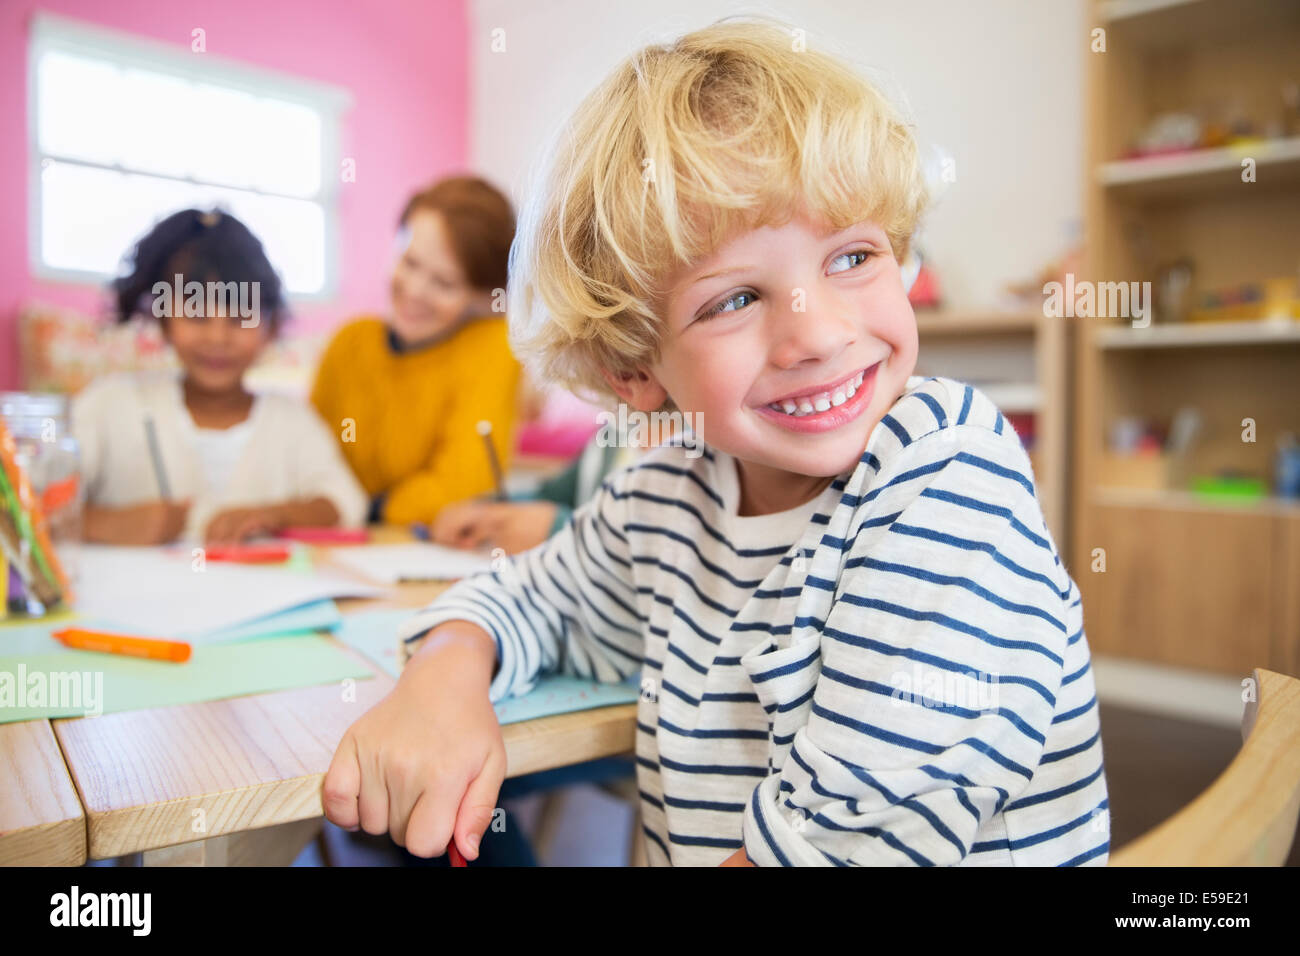 Student smiling in classroom Photo Stock